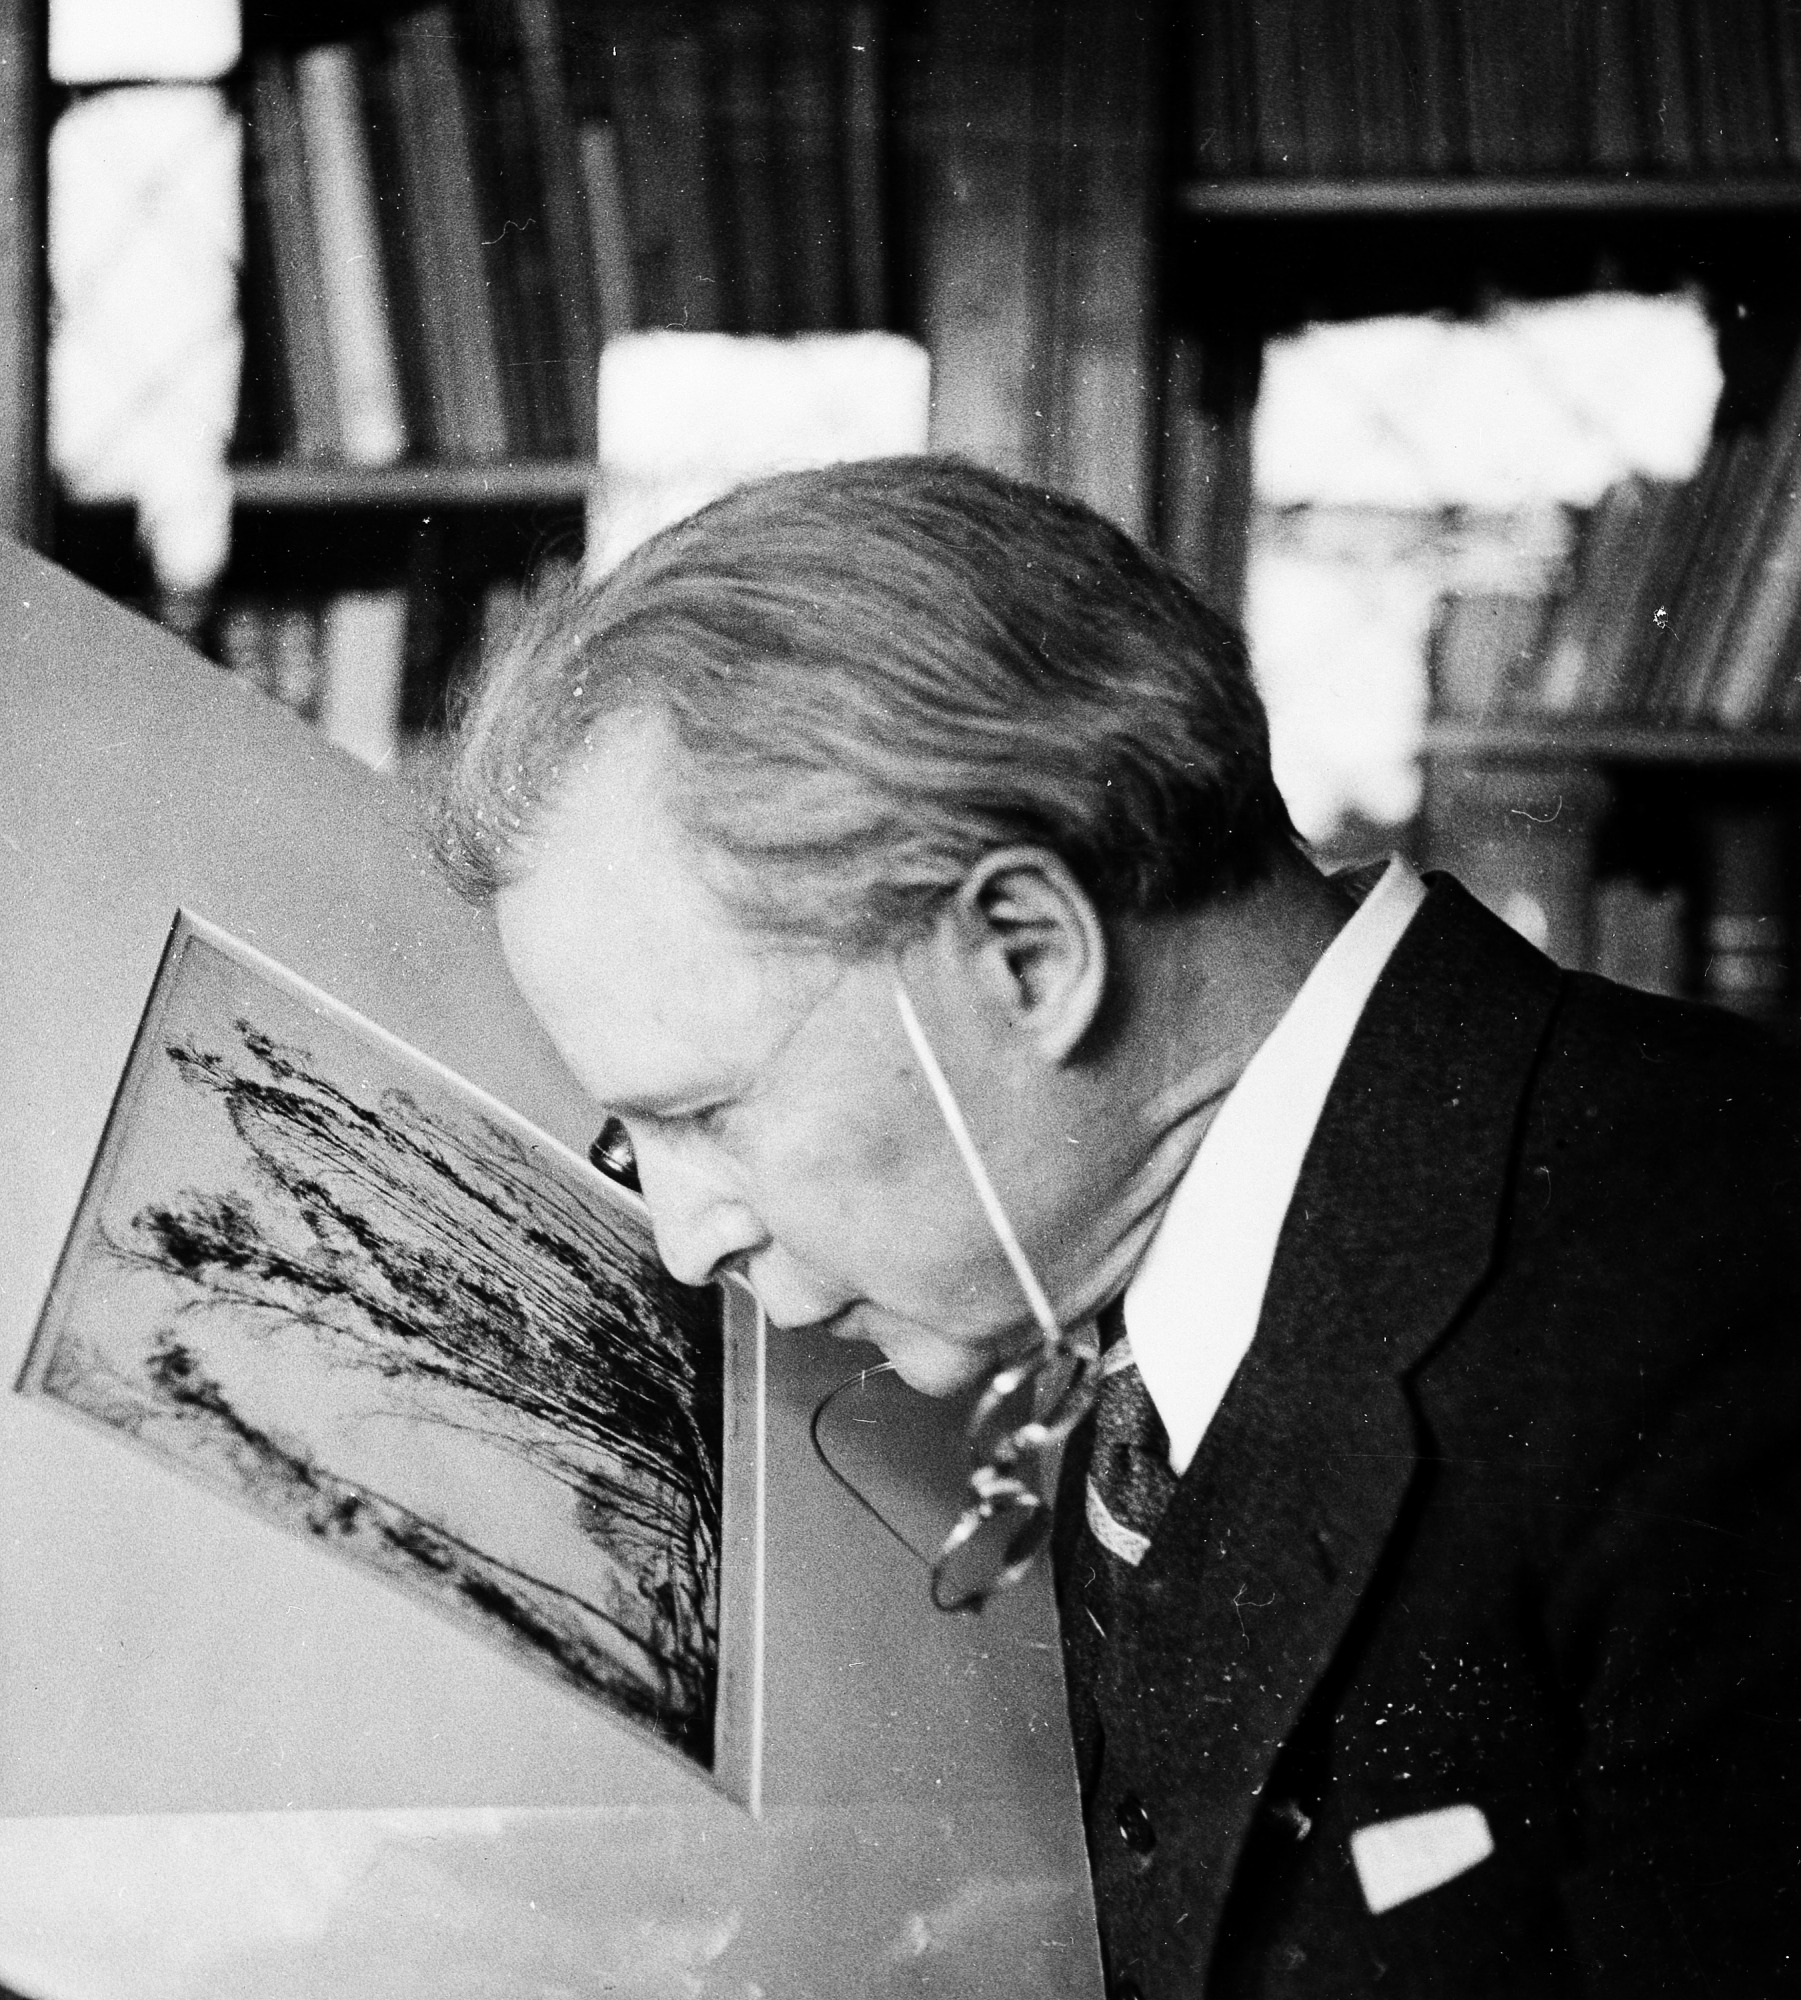 Ruel P. Tolman Examining Art Work, by Unknown, c. 1935, Smithsonian Archives - History Div, 96-556.